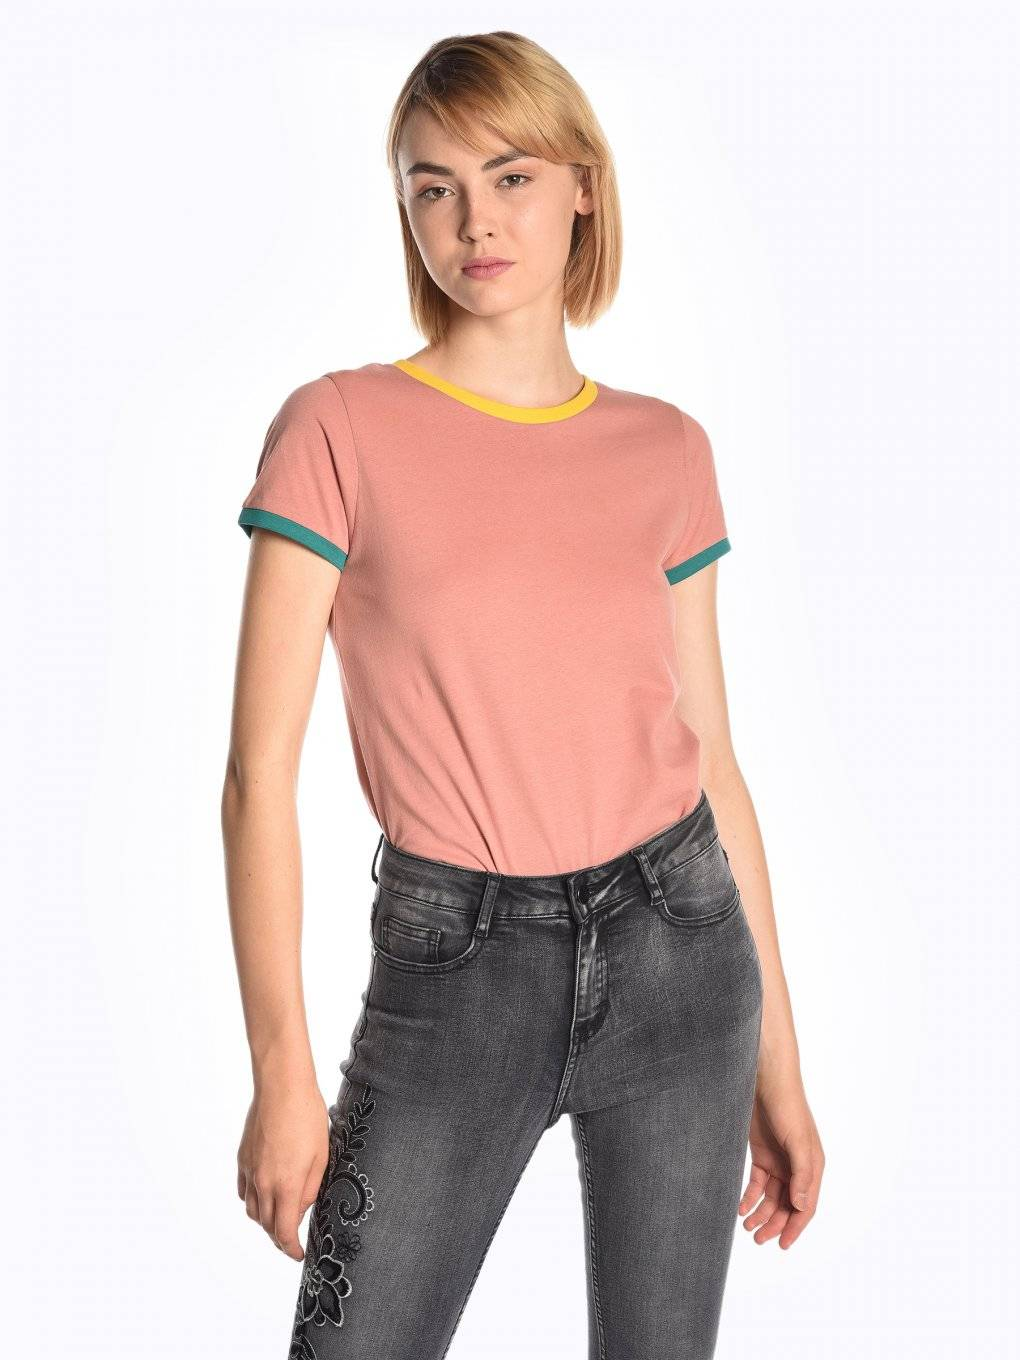 T-shirt with colourful trims